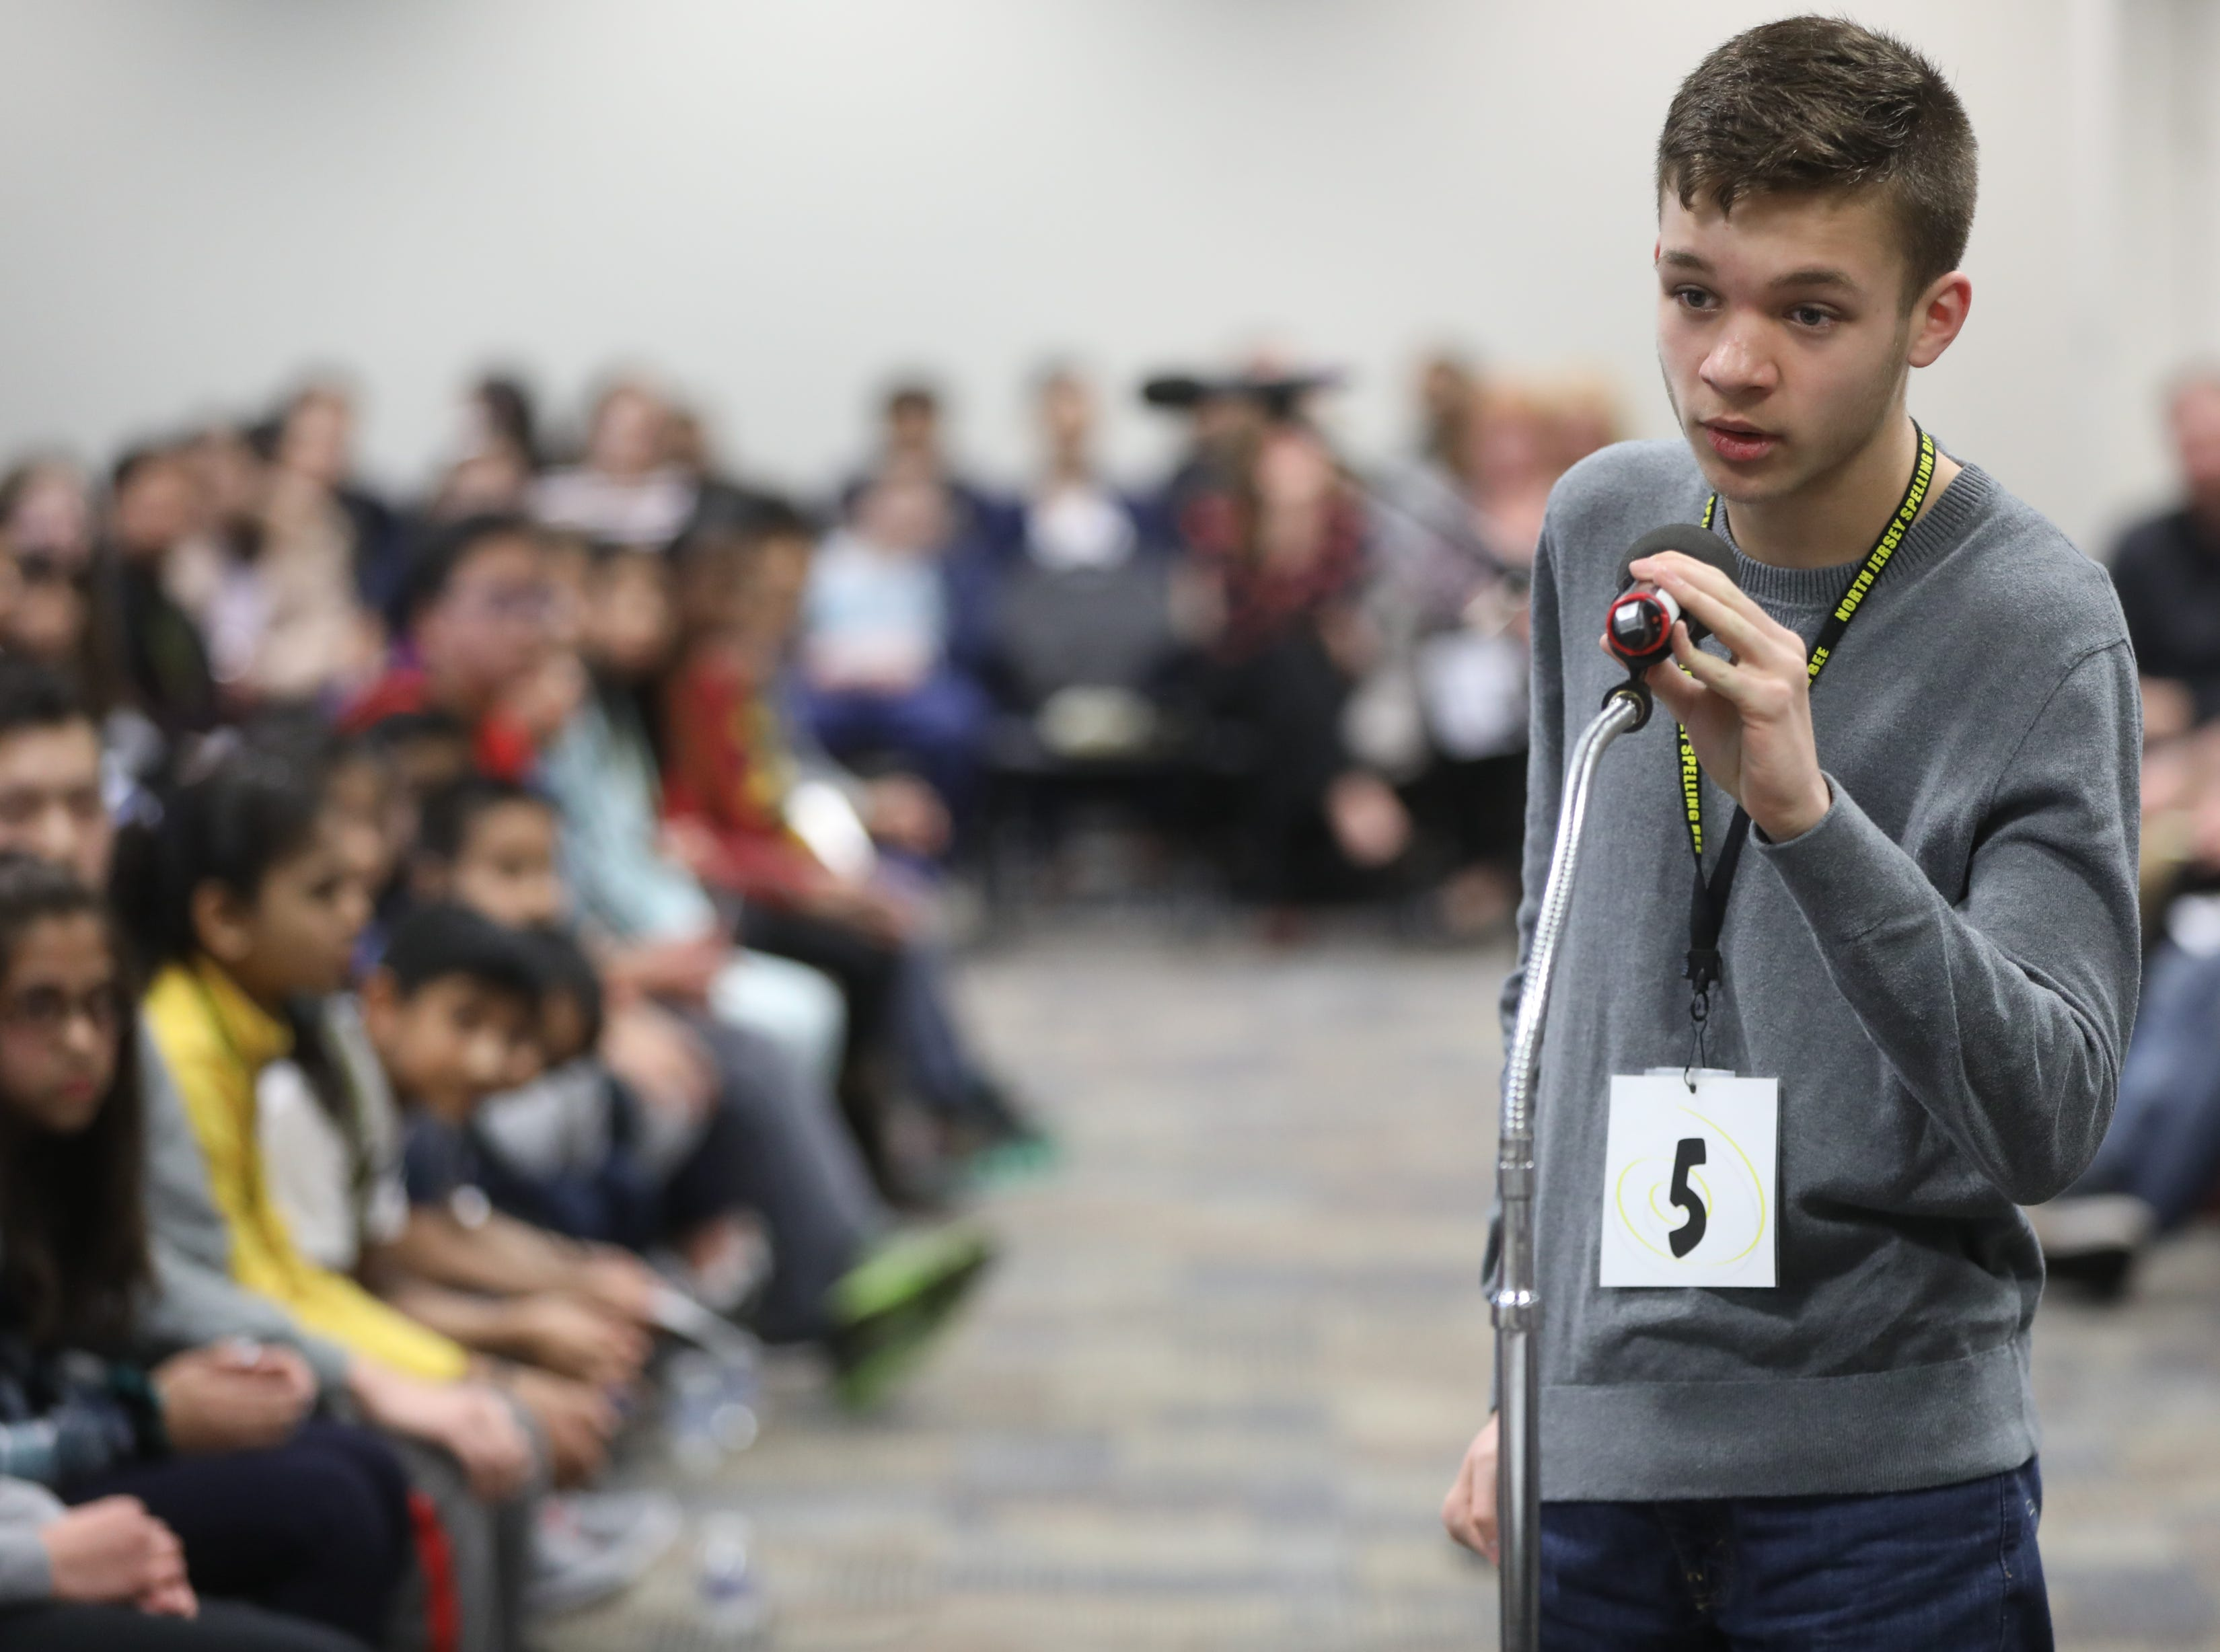 Damon Foster, of East Rutherford, competes in the first round of the 2019 North Jersey Spelling Bee, in Paramus. Thursday, March 14, 2019